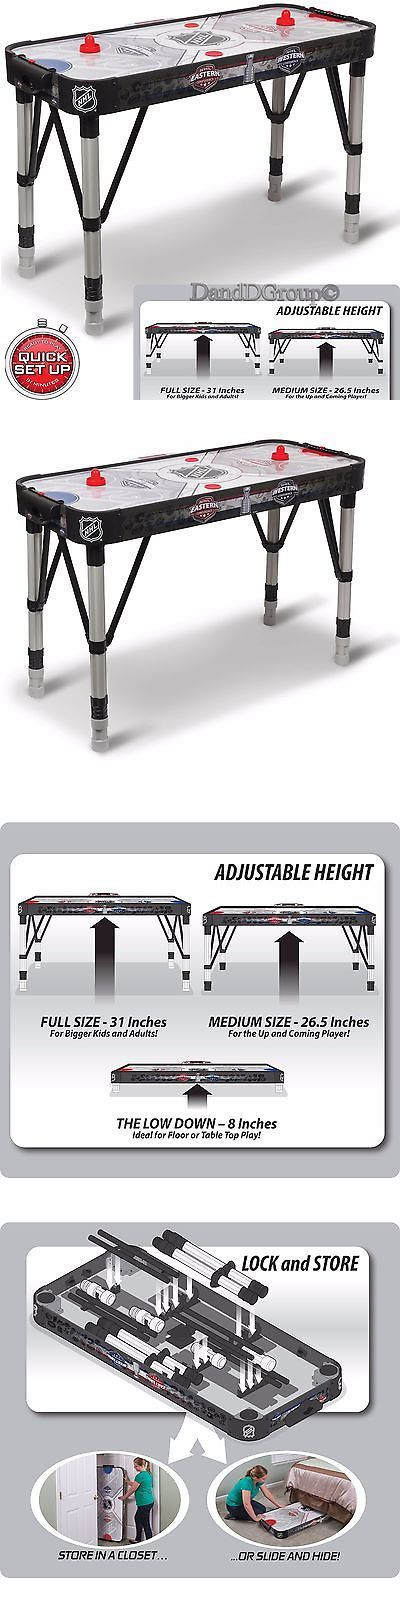 Air Hockey 36275: Air Hockey Table Game Adjust 54 Nhl Automatic Led Scoring Sound Fun Room Indoor BUY IT NOW ONLY: $79.99